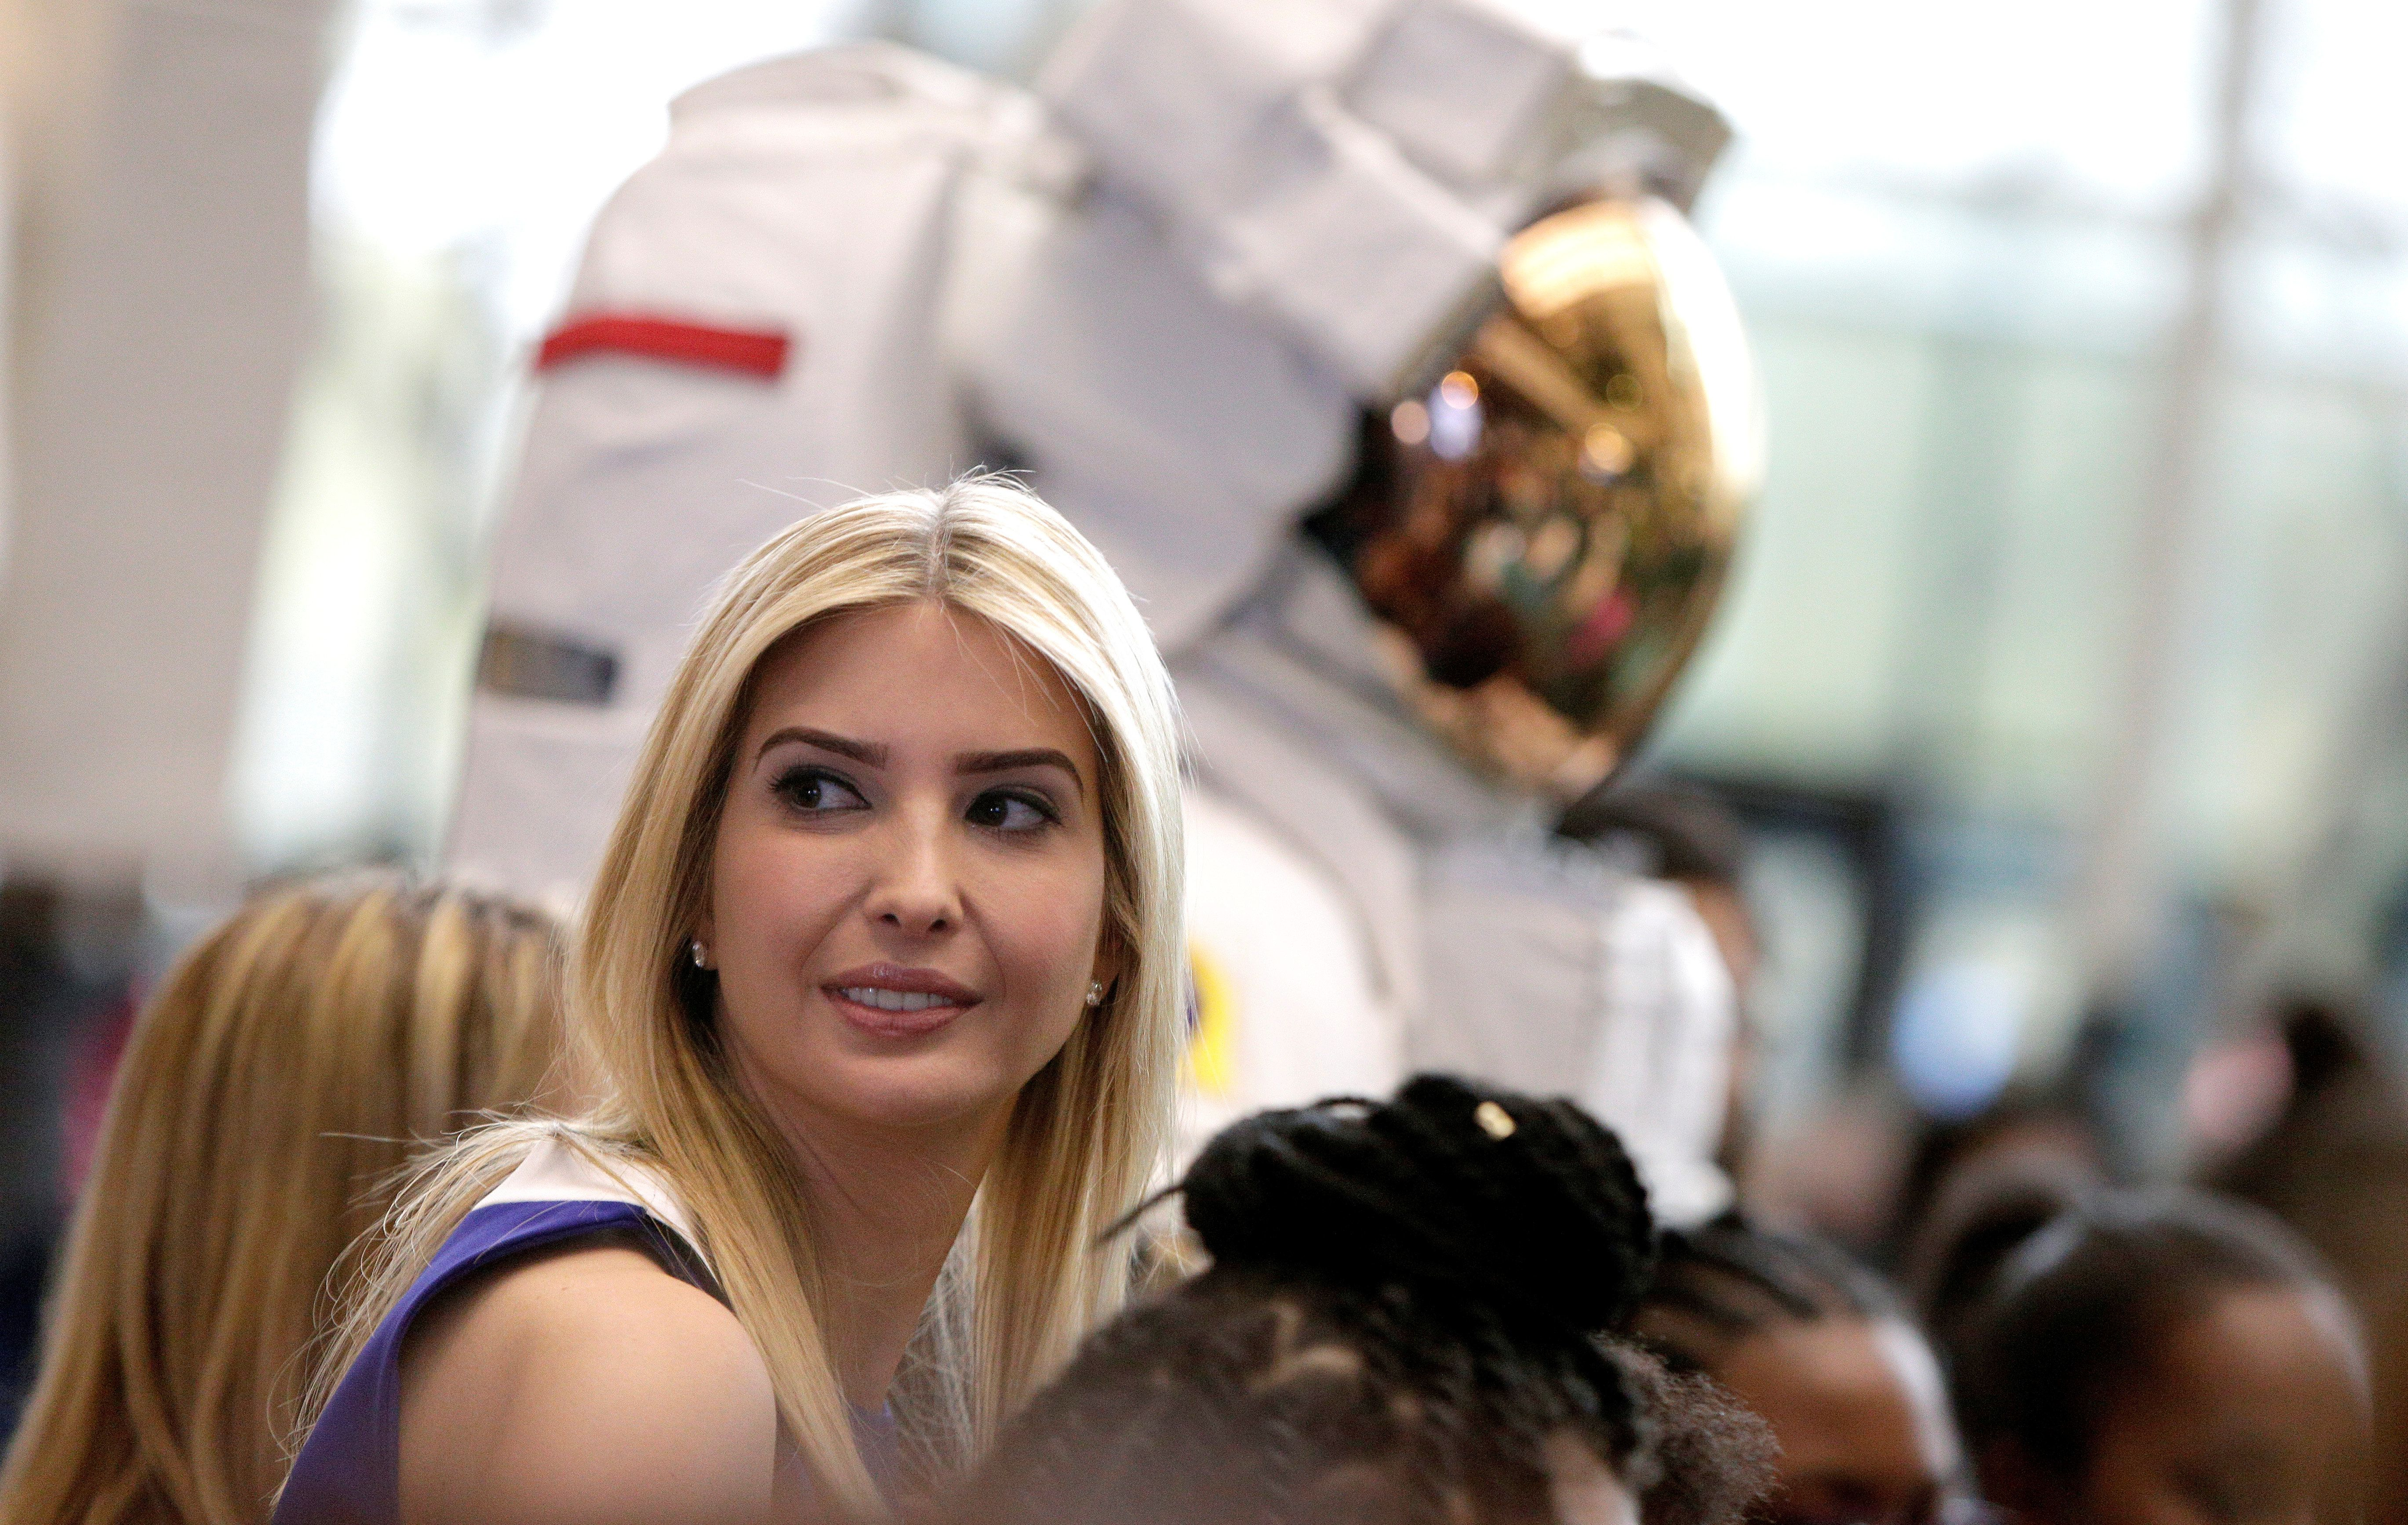 Ivanka Trump Keeping Stake In D.C. Hotel Despite White House Role, Filings